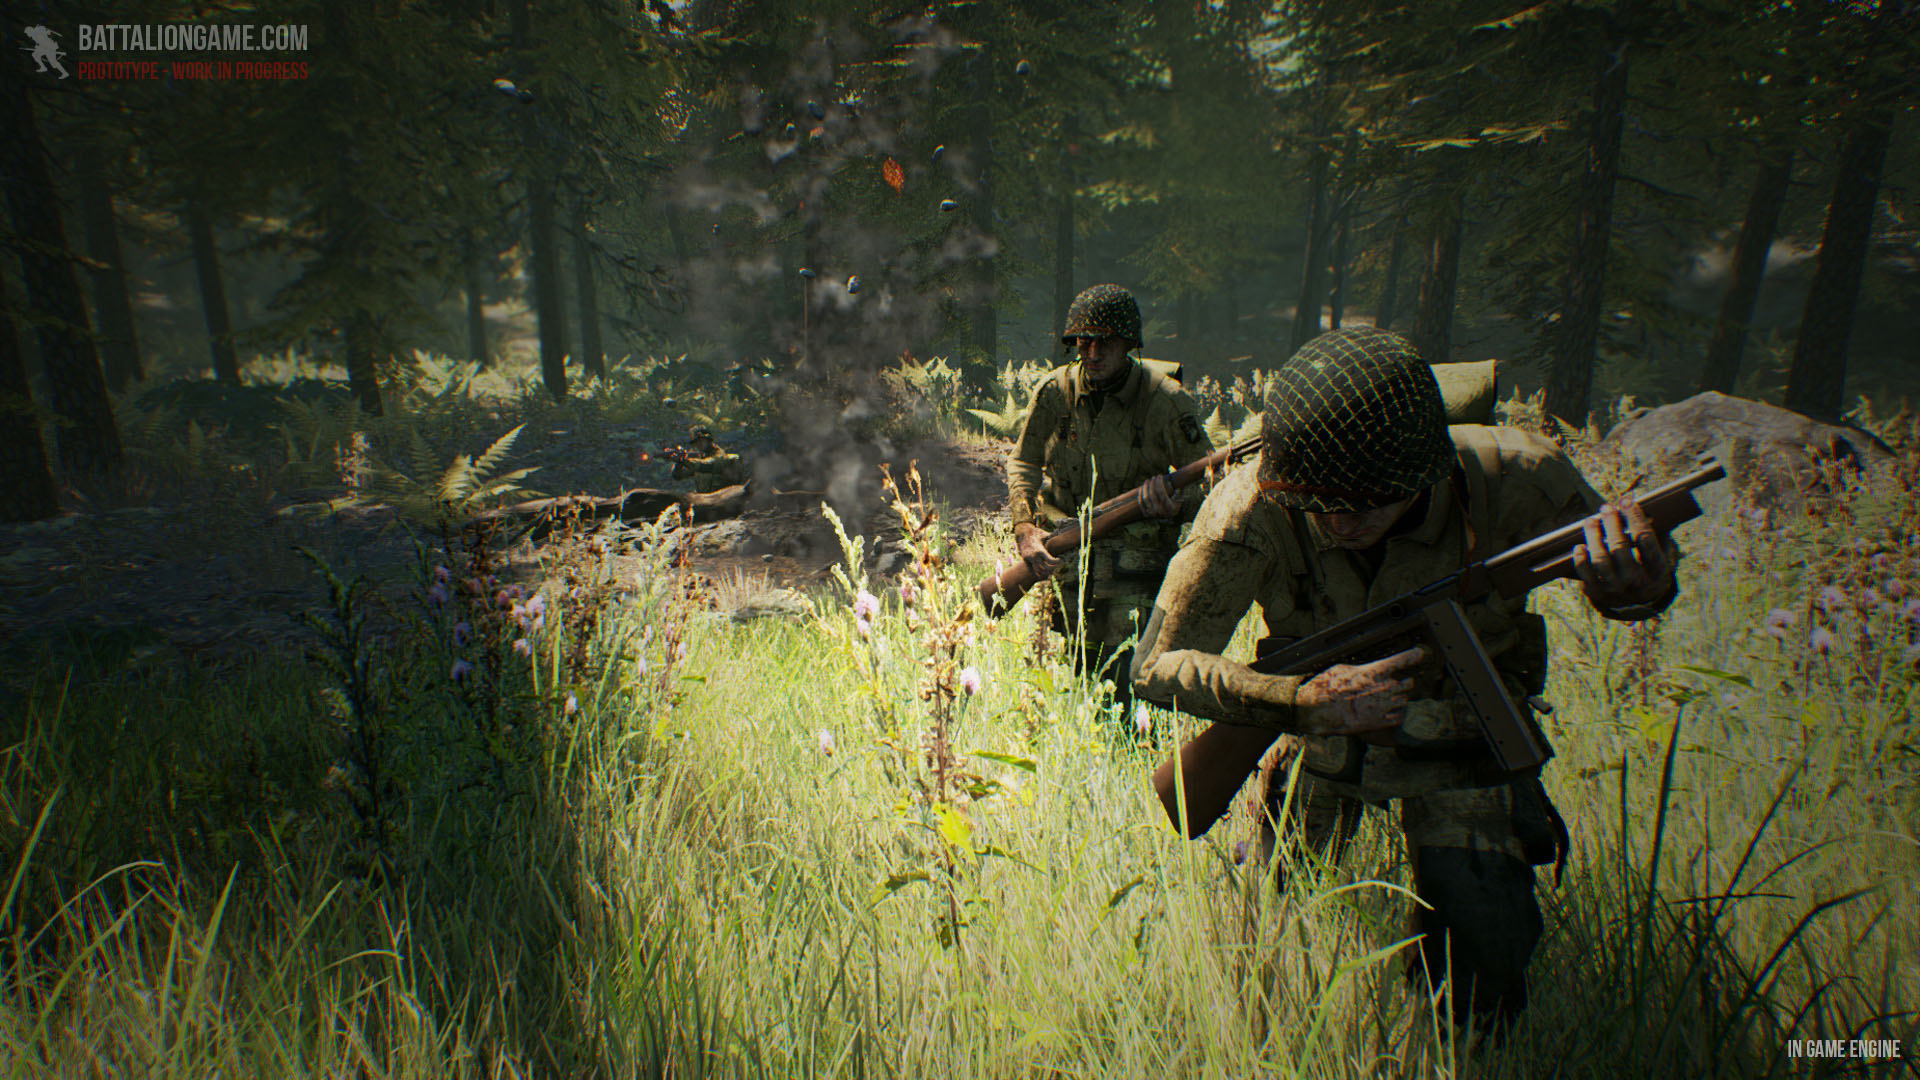 Battalion 1944 New Gameplay Footage And Details Revealed